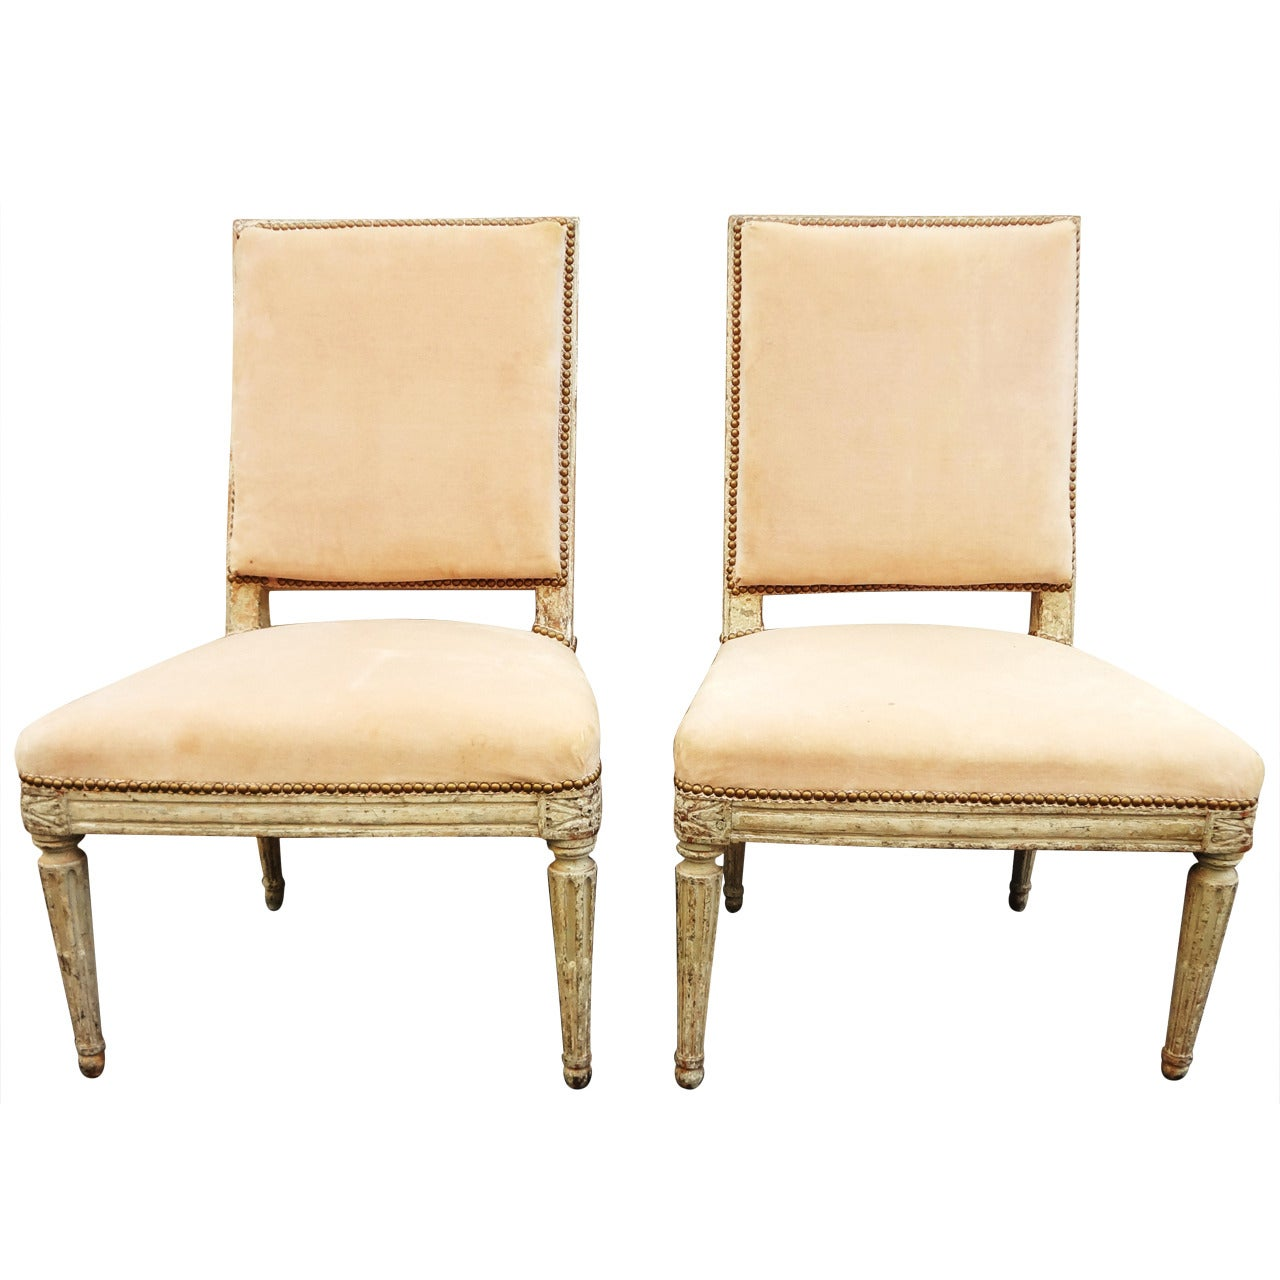 Pair of 18th century french painted side chairs collection of cole porter for sale at 1stdibs